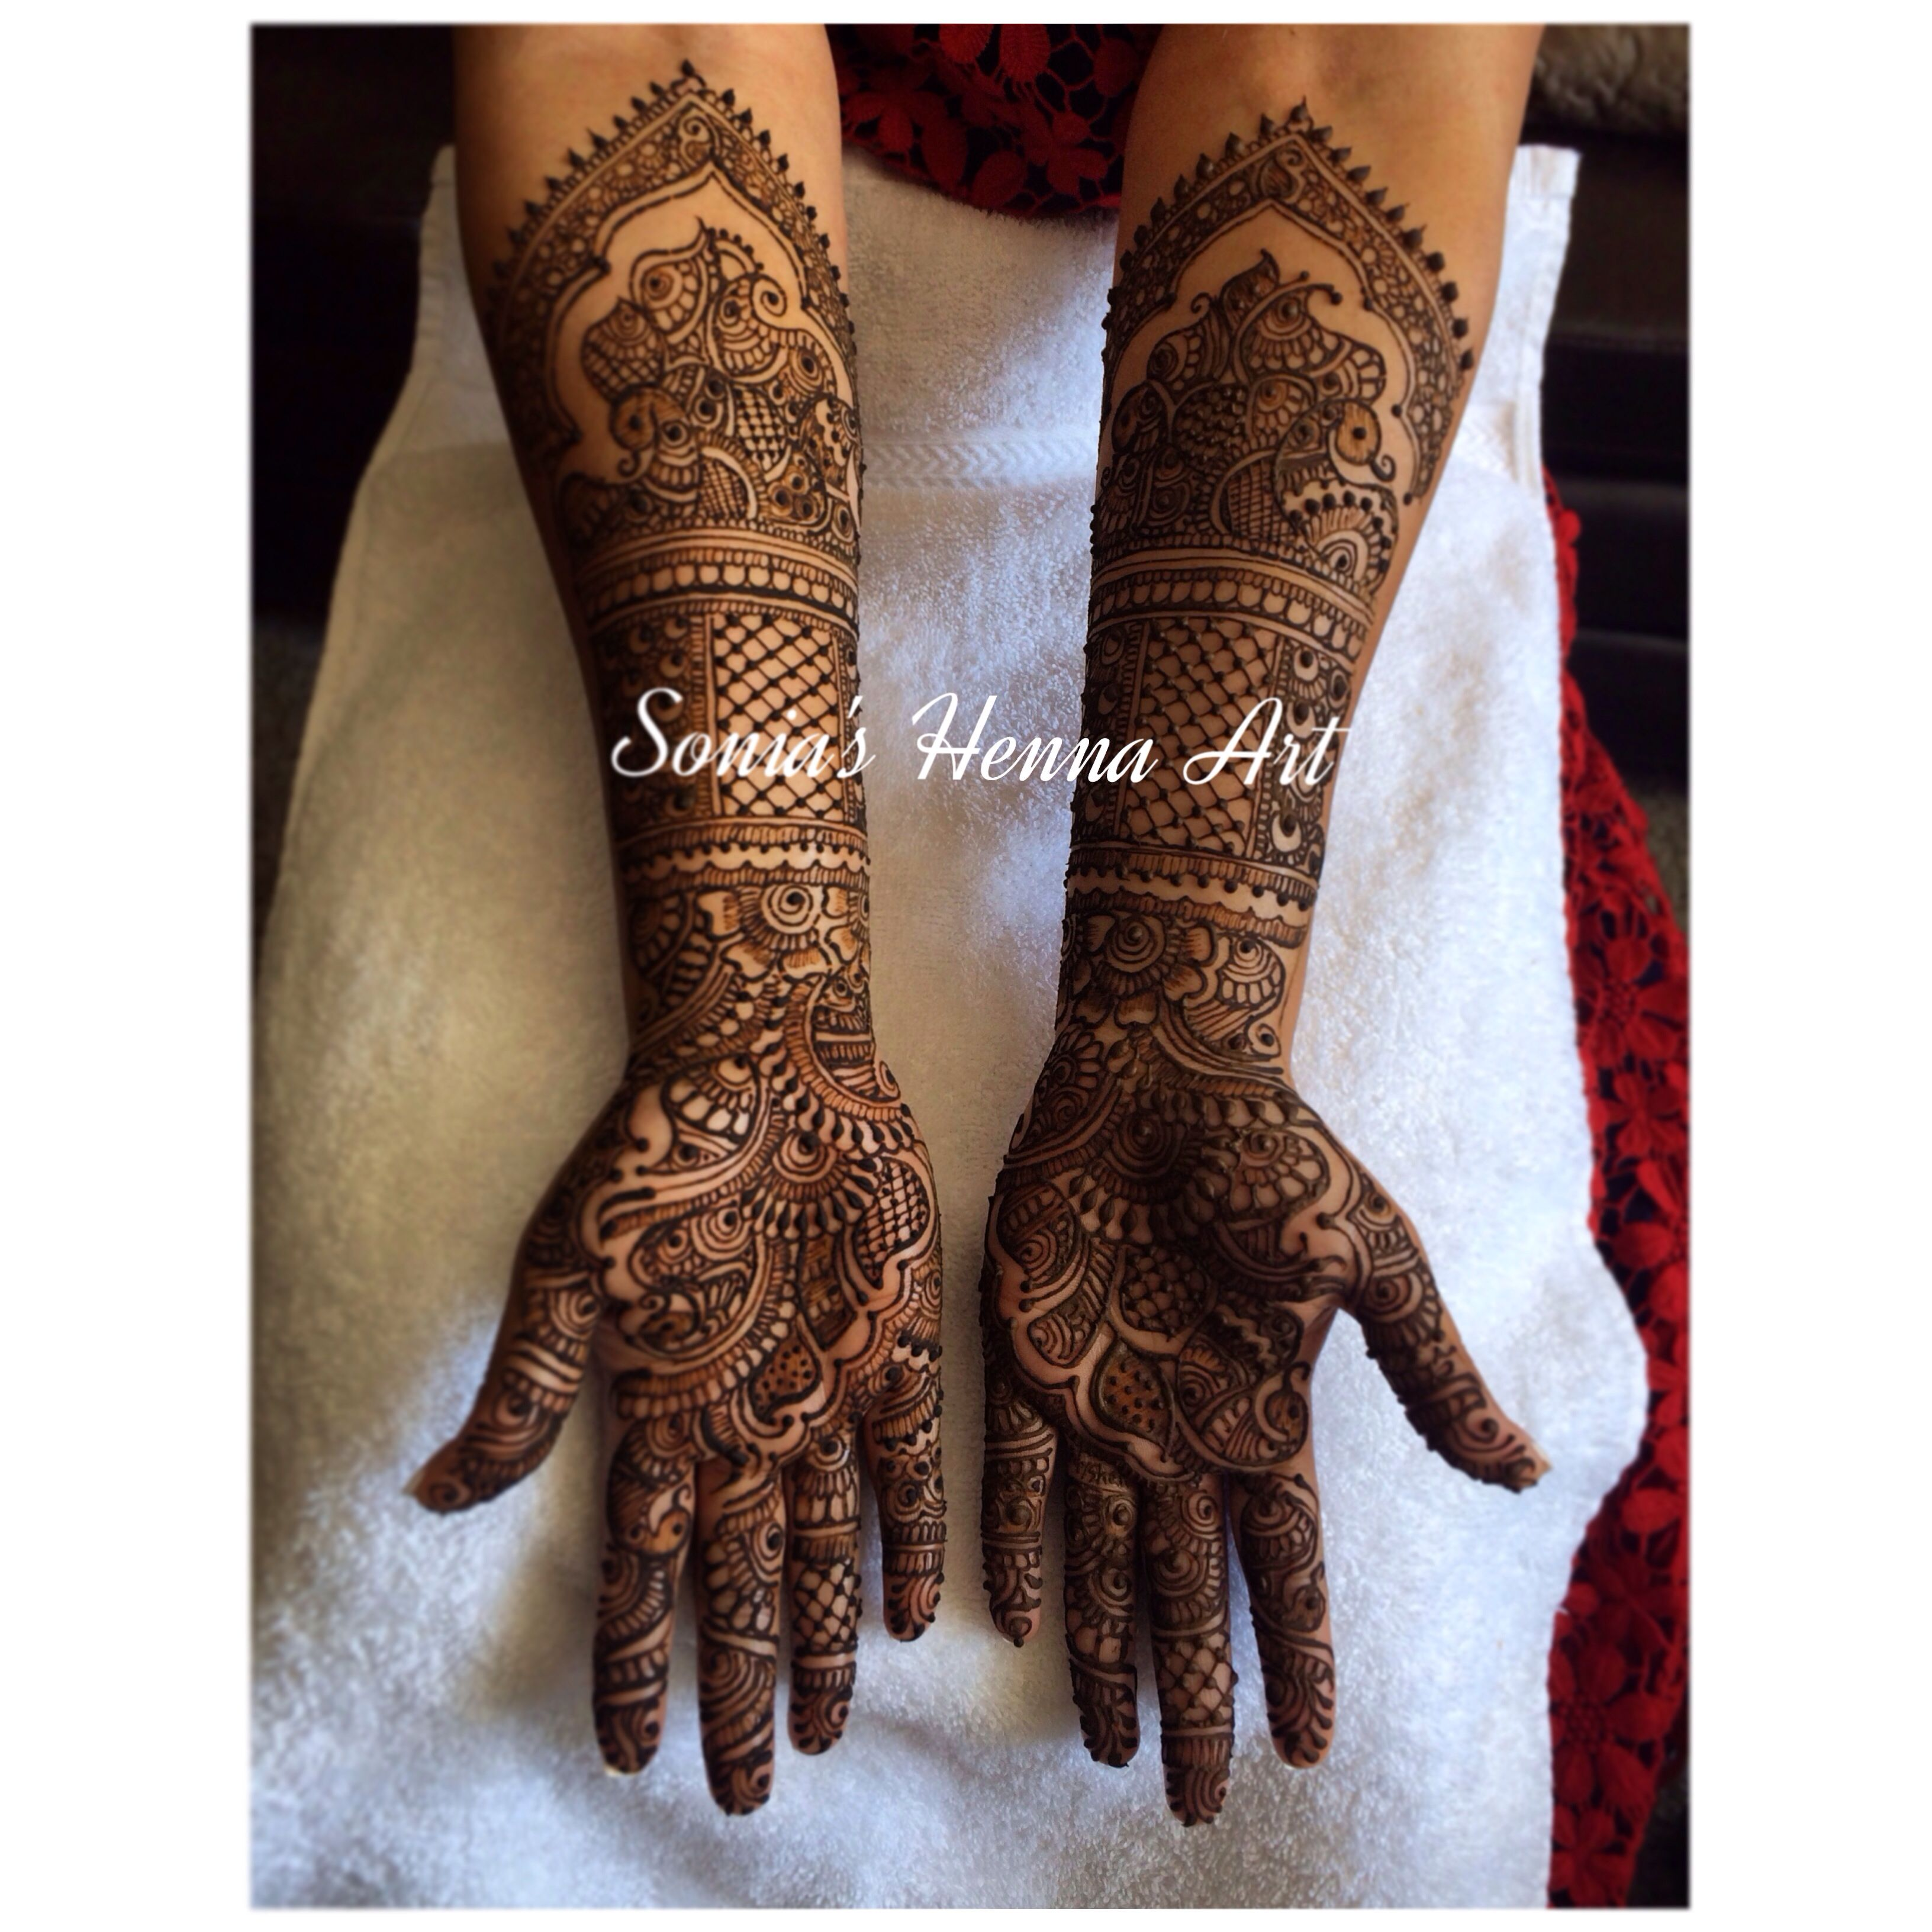 Sonia's Henna Art full traditional indian Mehndi design in Toronto Artist in Toronto Henna art Mehndi design